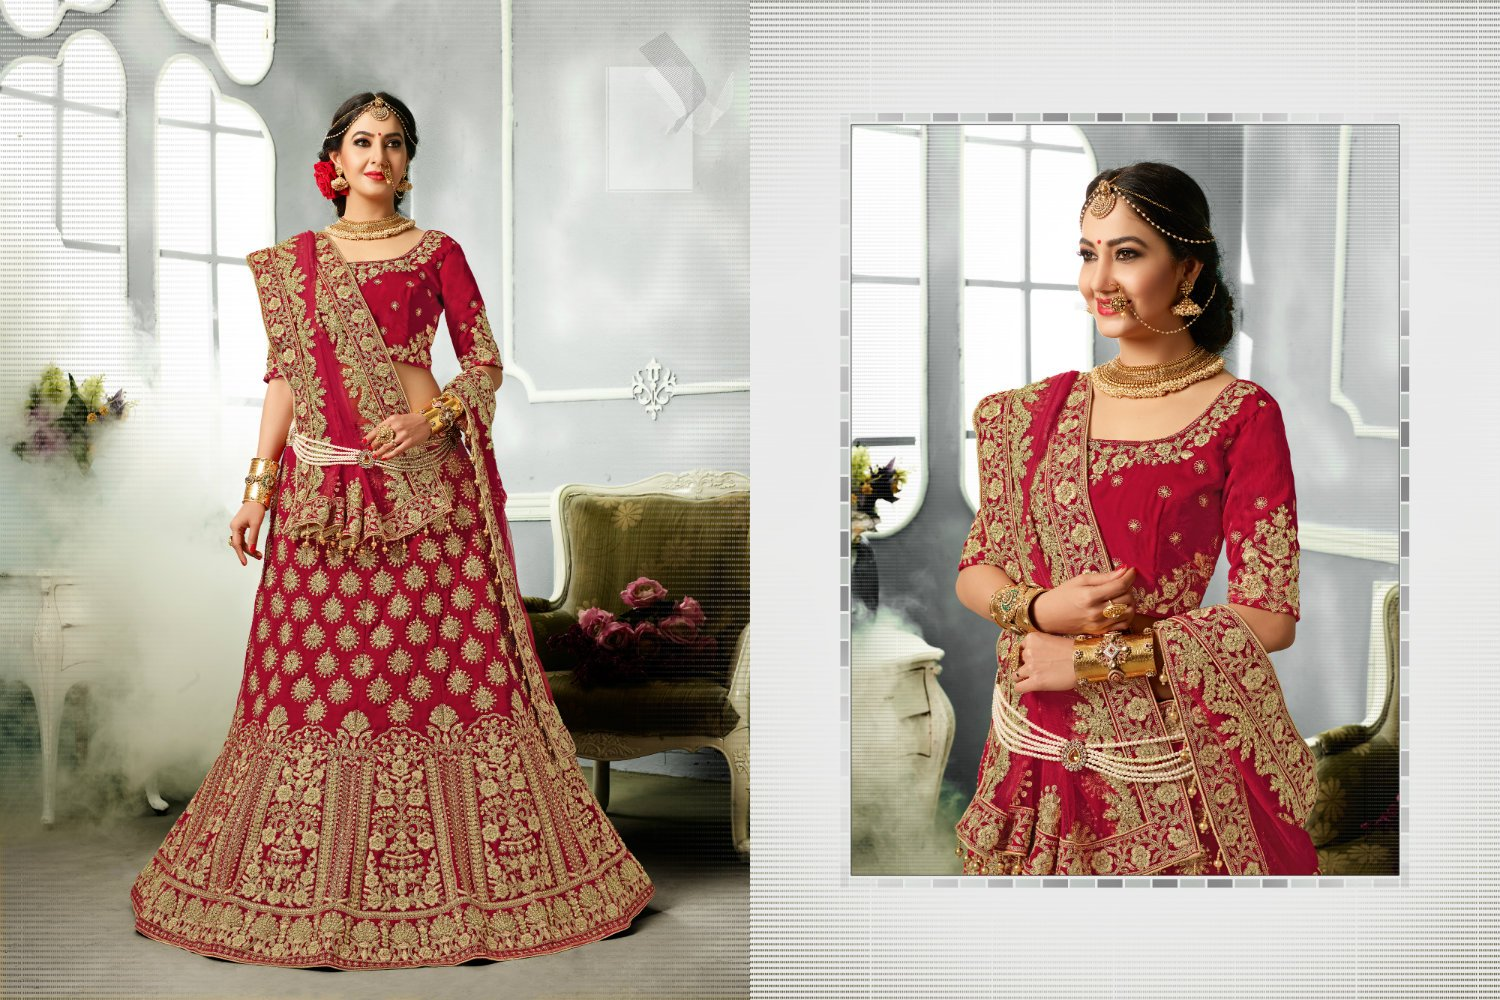 Bridal PRM7397 Wedding Special Maroon Velvet Satin Silk Net Lehenga Choli - Fashion Nation